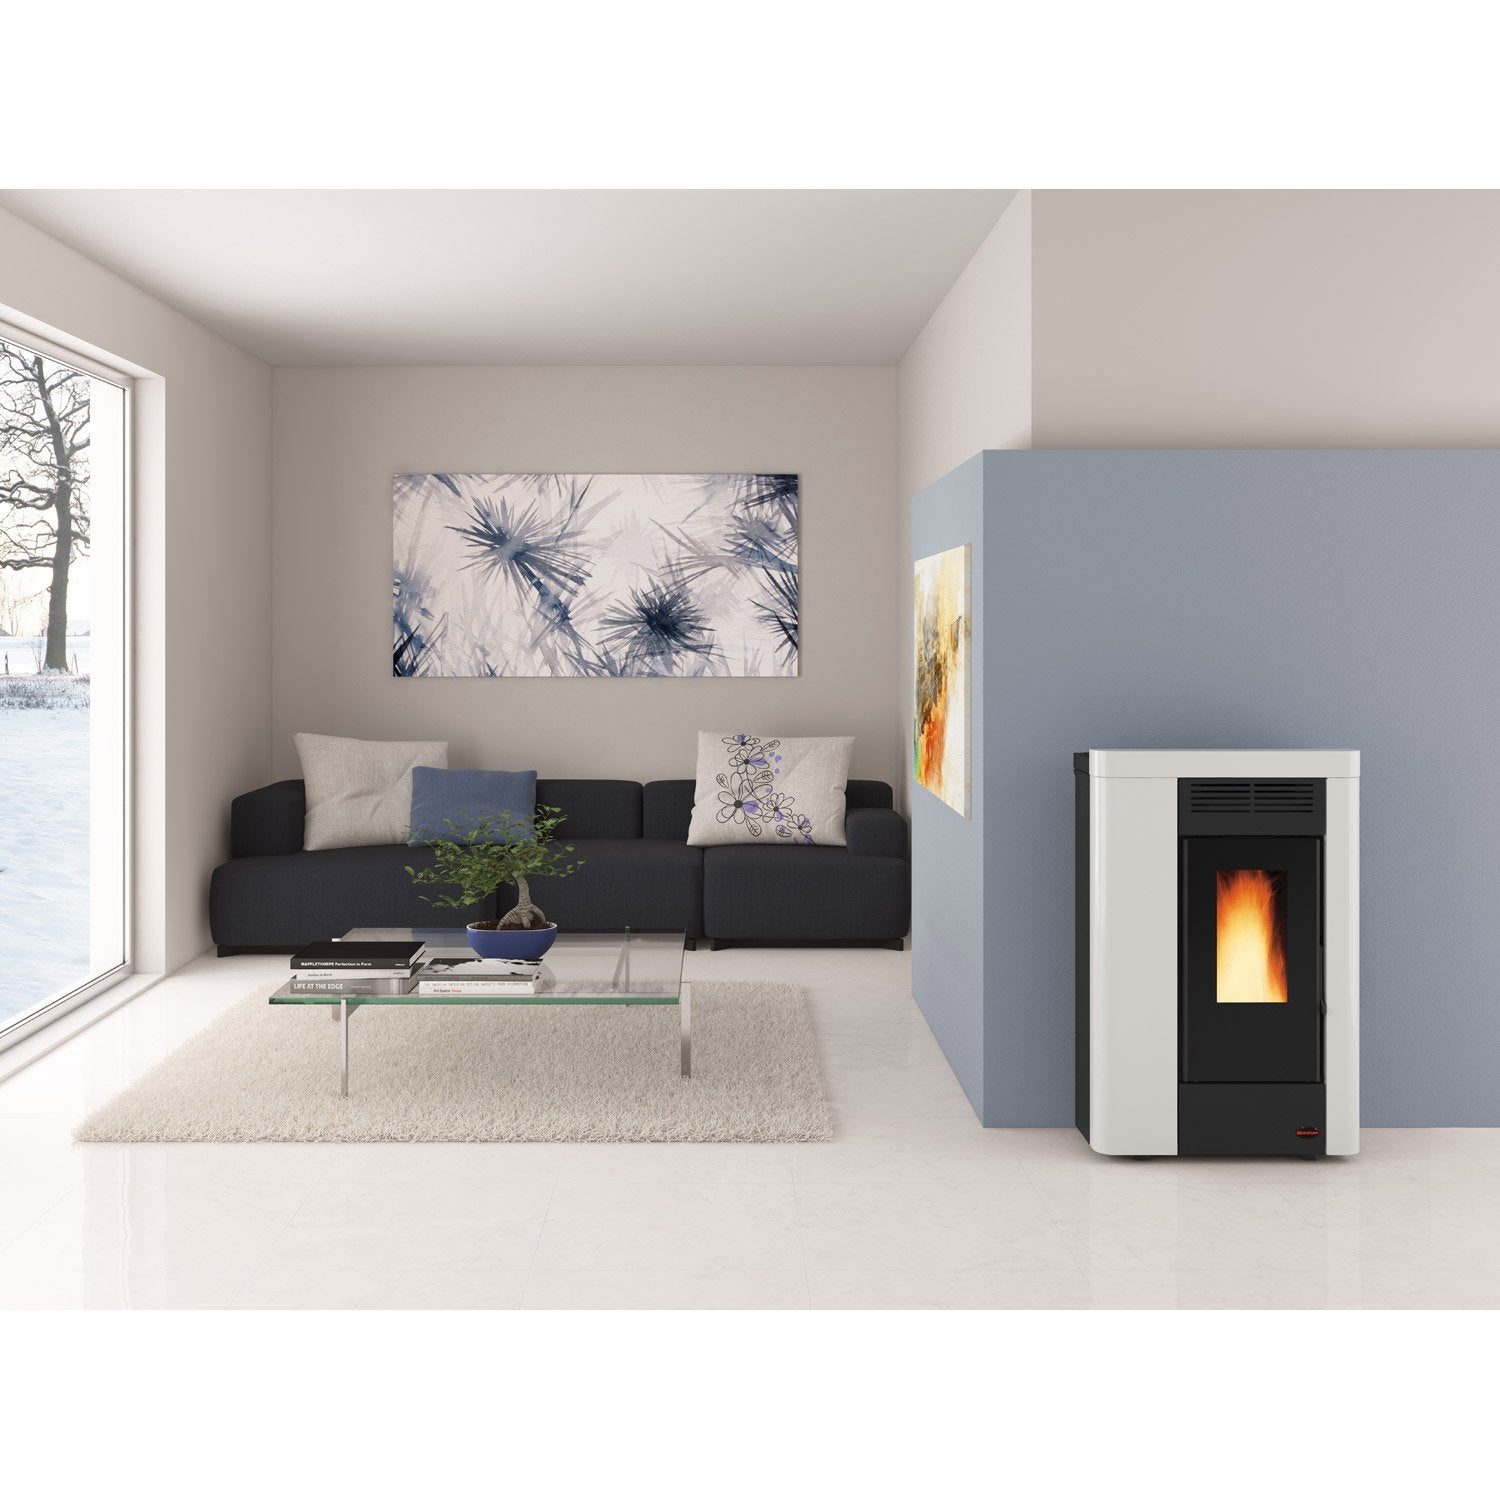 po le granul s extraflame anabella blanc 8 kw leroy merlin. Black Bedroom Furniture Sets. Home Design Ideas